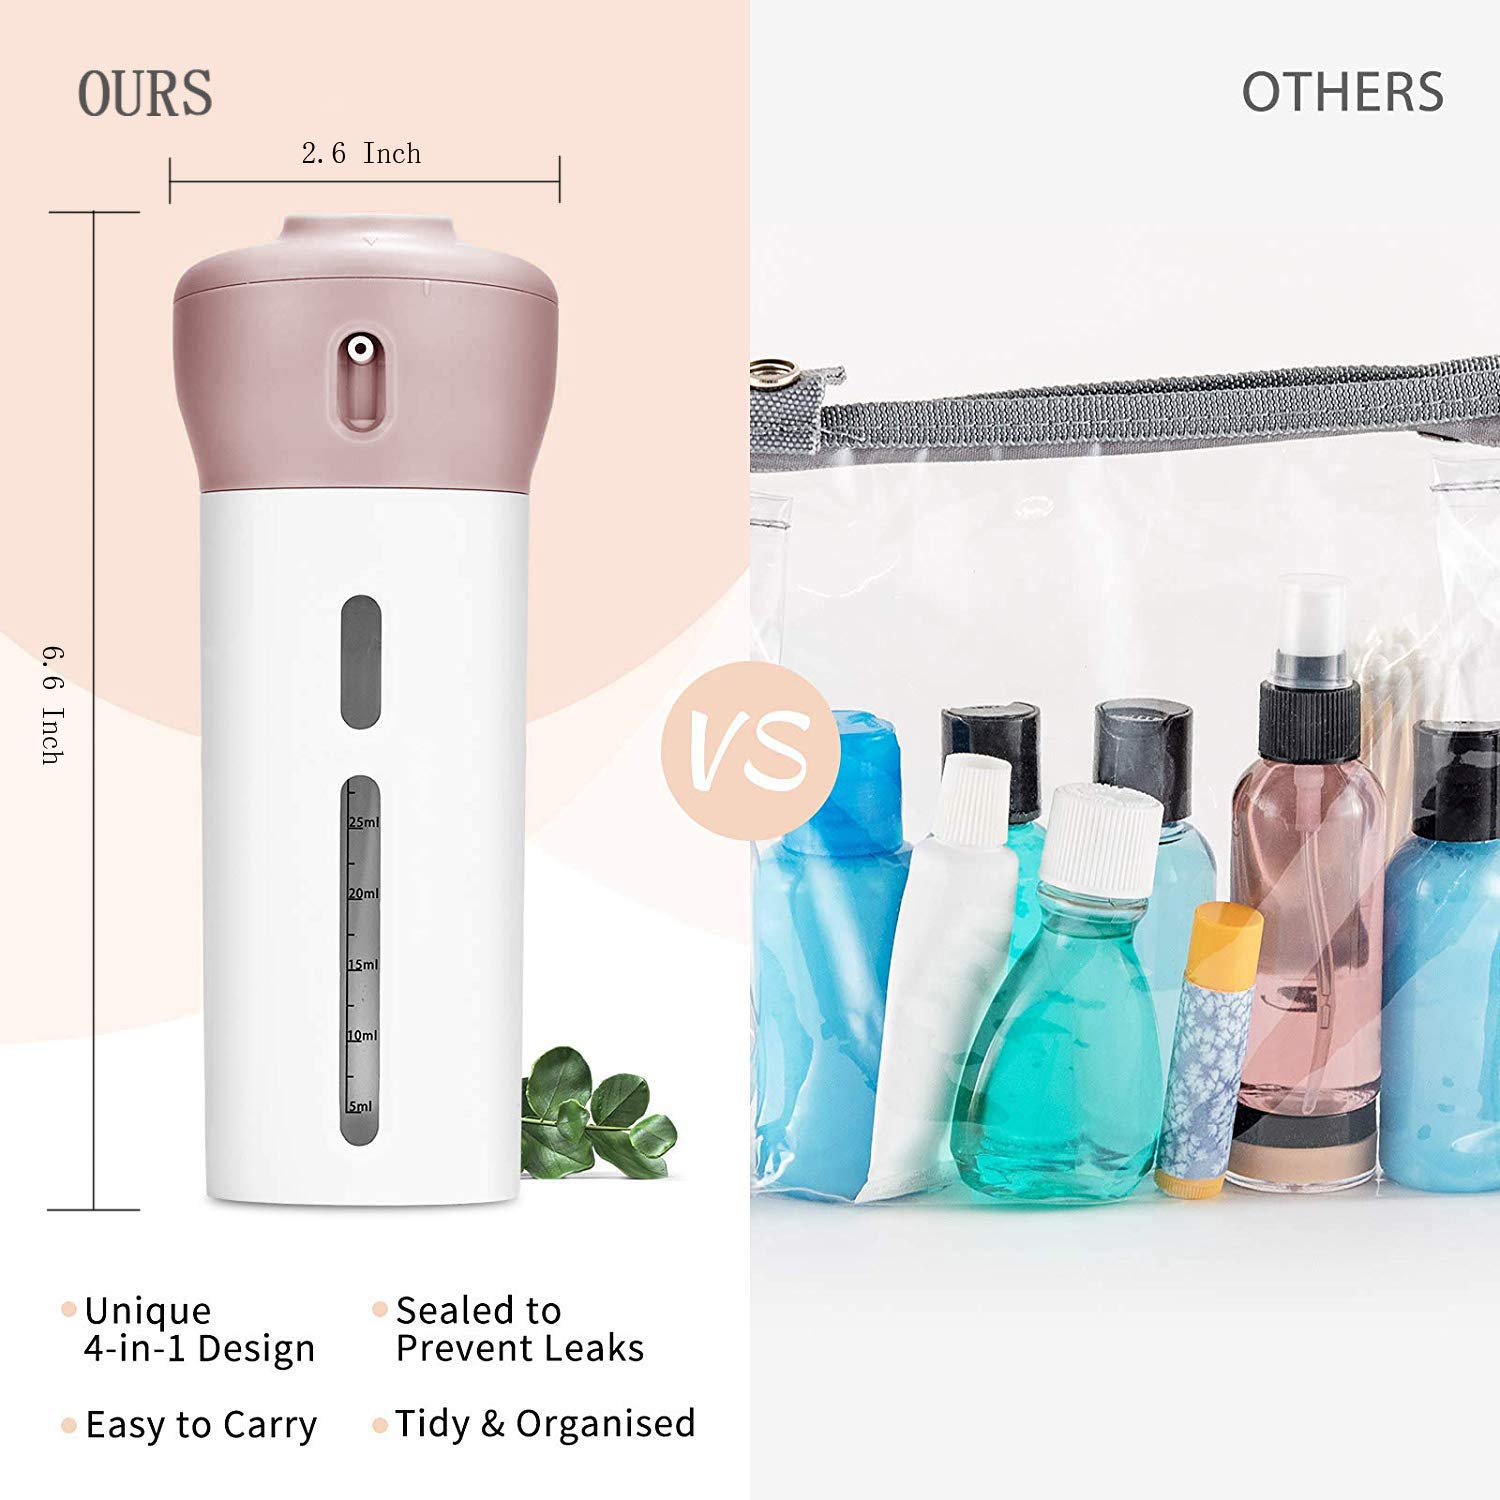 Travel Bottles Spray Bottles TSA Approved Containers Shampoo and Conditioner Bottles 4 in 1 Portable Leak Proof Refillable Travel Toiletries Accessories Kit